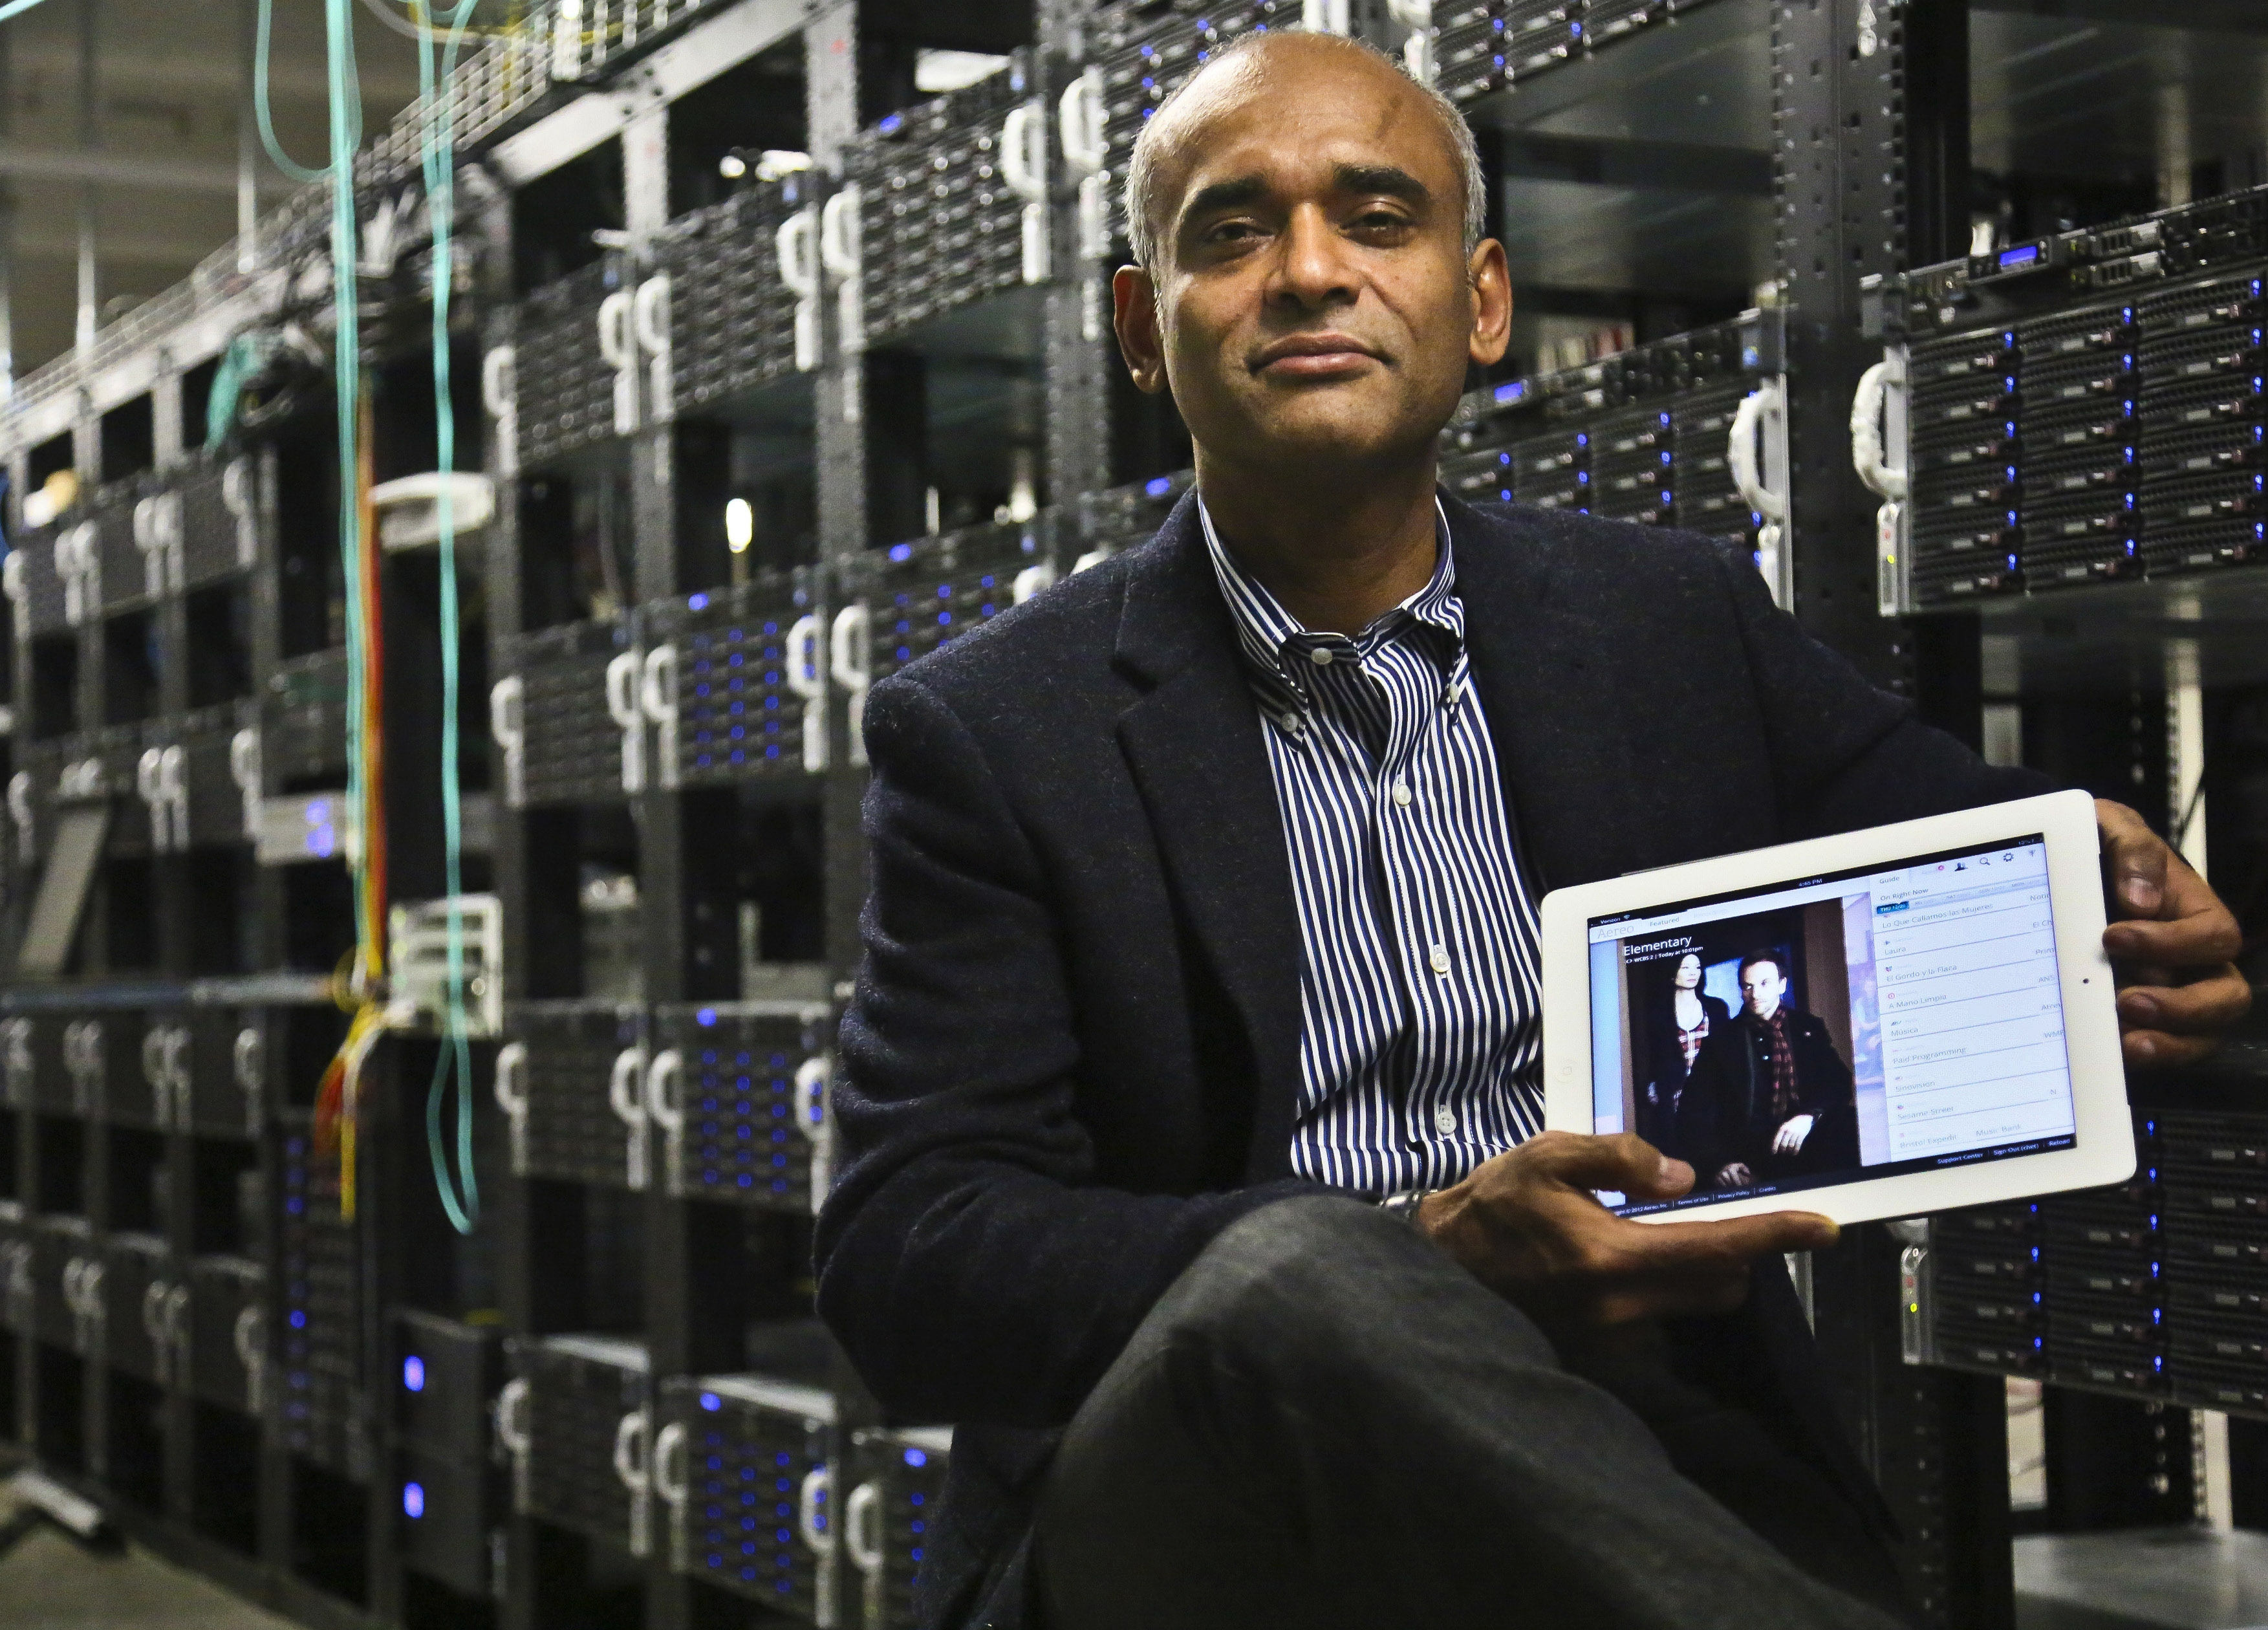 Chet Kanojia, founder and CEO of Aereo, holds a tablet displaying his company's technology.